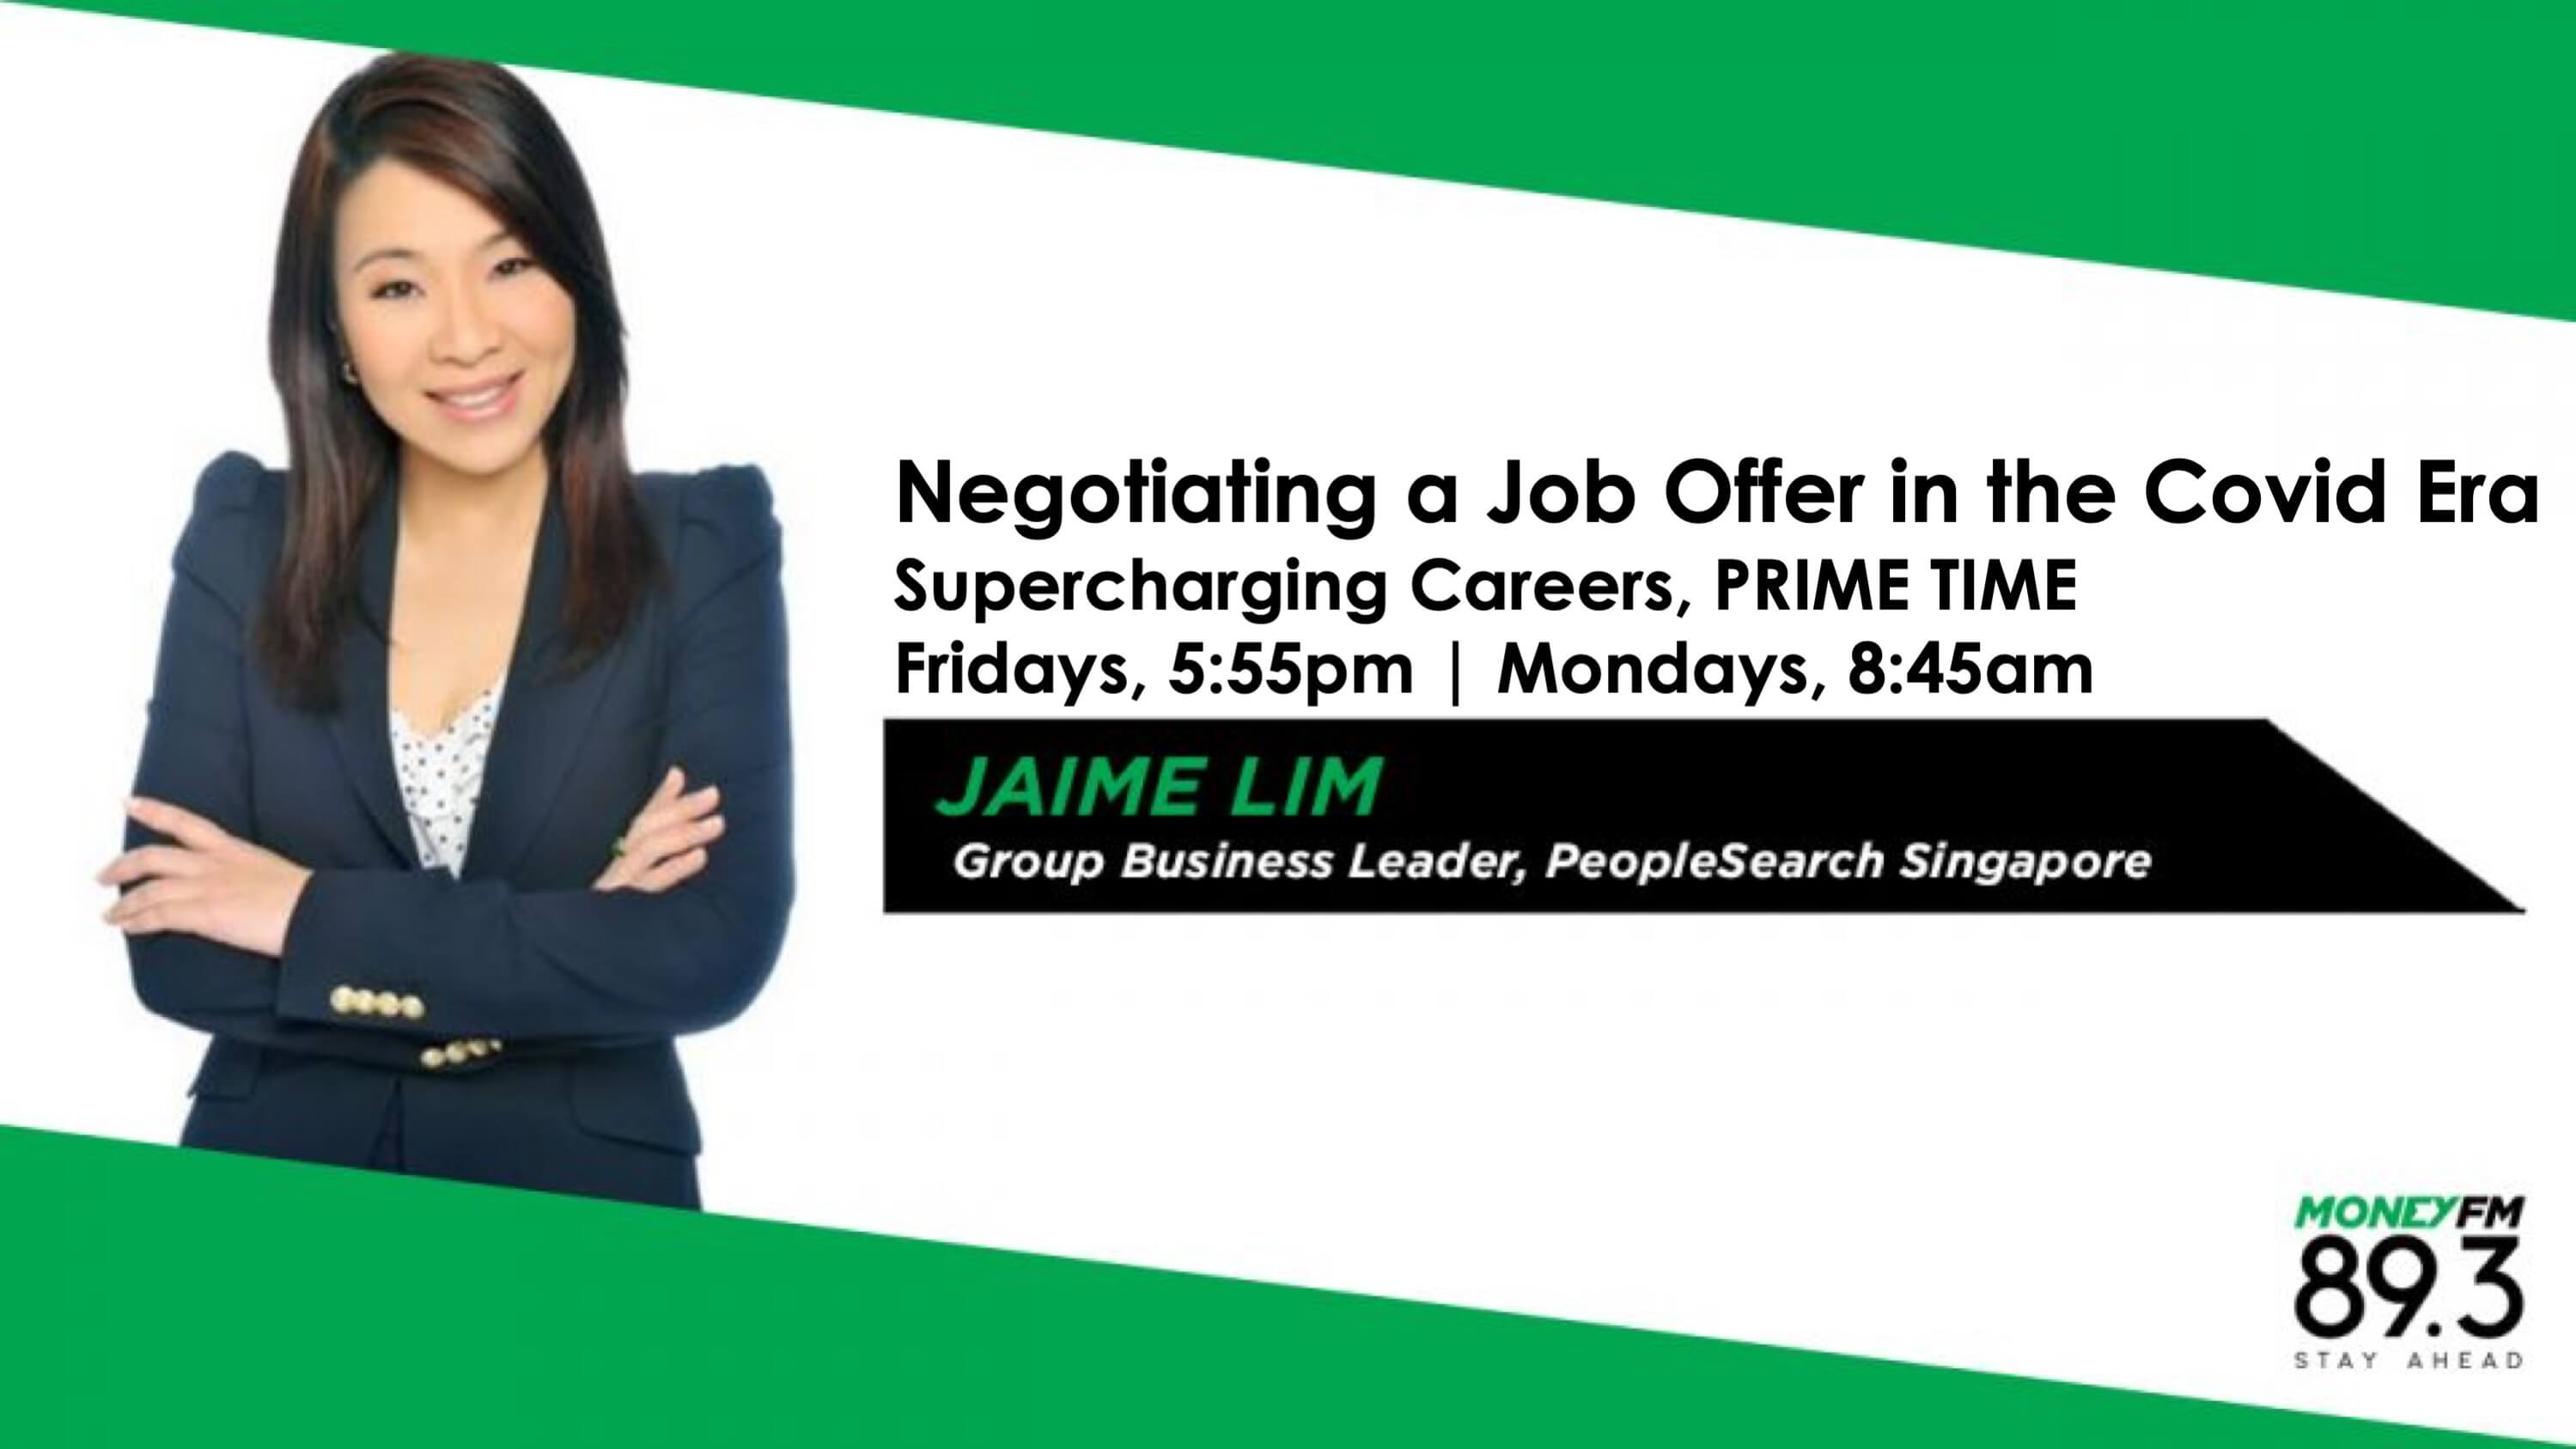 PeopleSearch Singapore's Jaime Lim on MONEY FM 89.3's Supercharging Careers banner